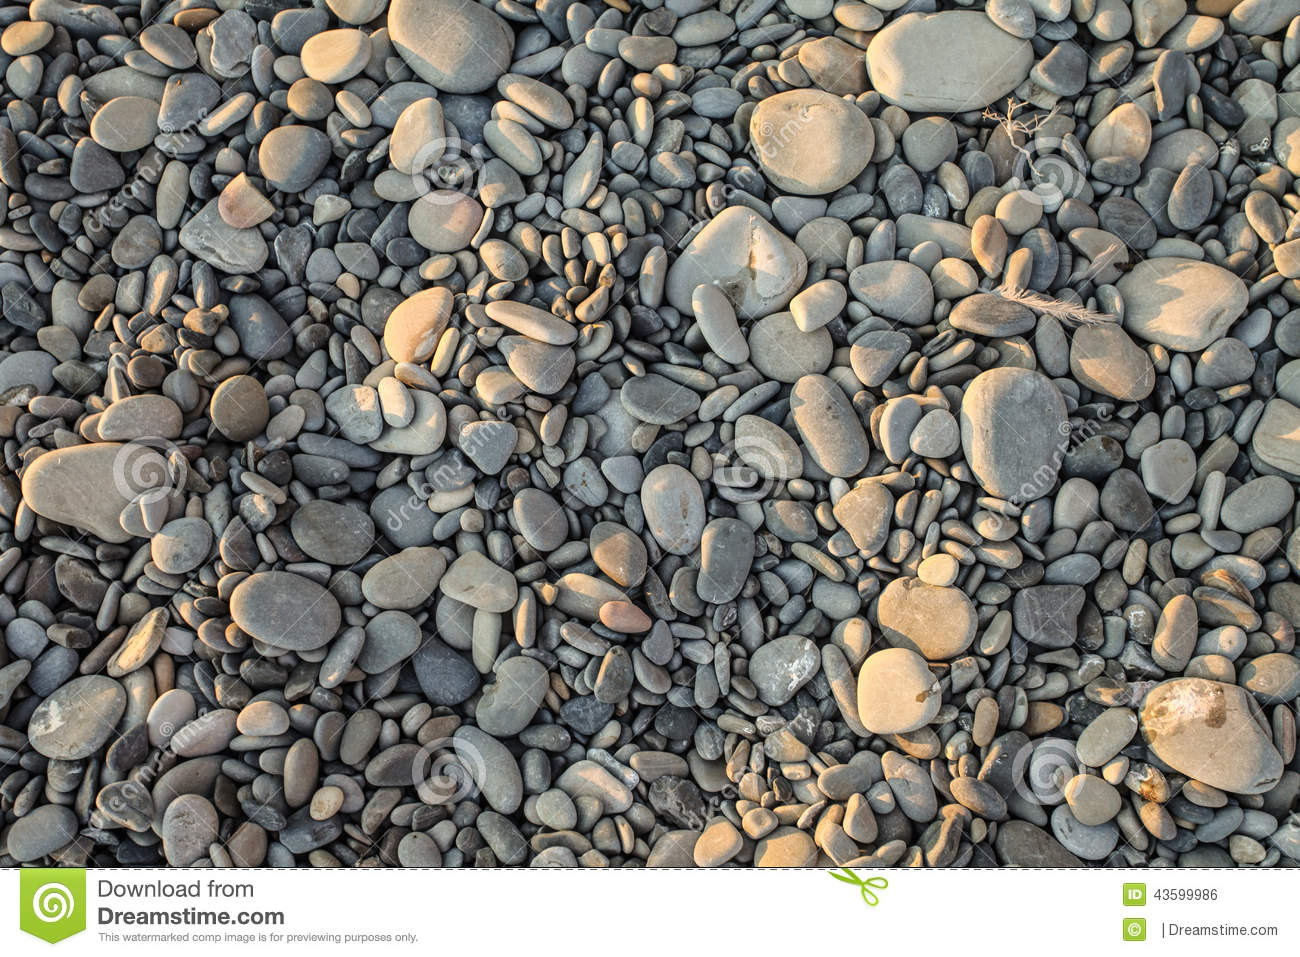 Texture, Background, Pebbles, Gray Stones On The Beach Stock Photo - Image 43599986-9135